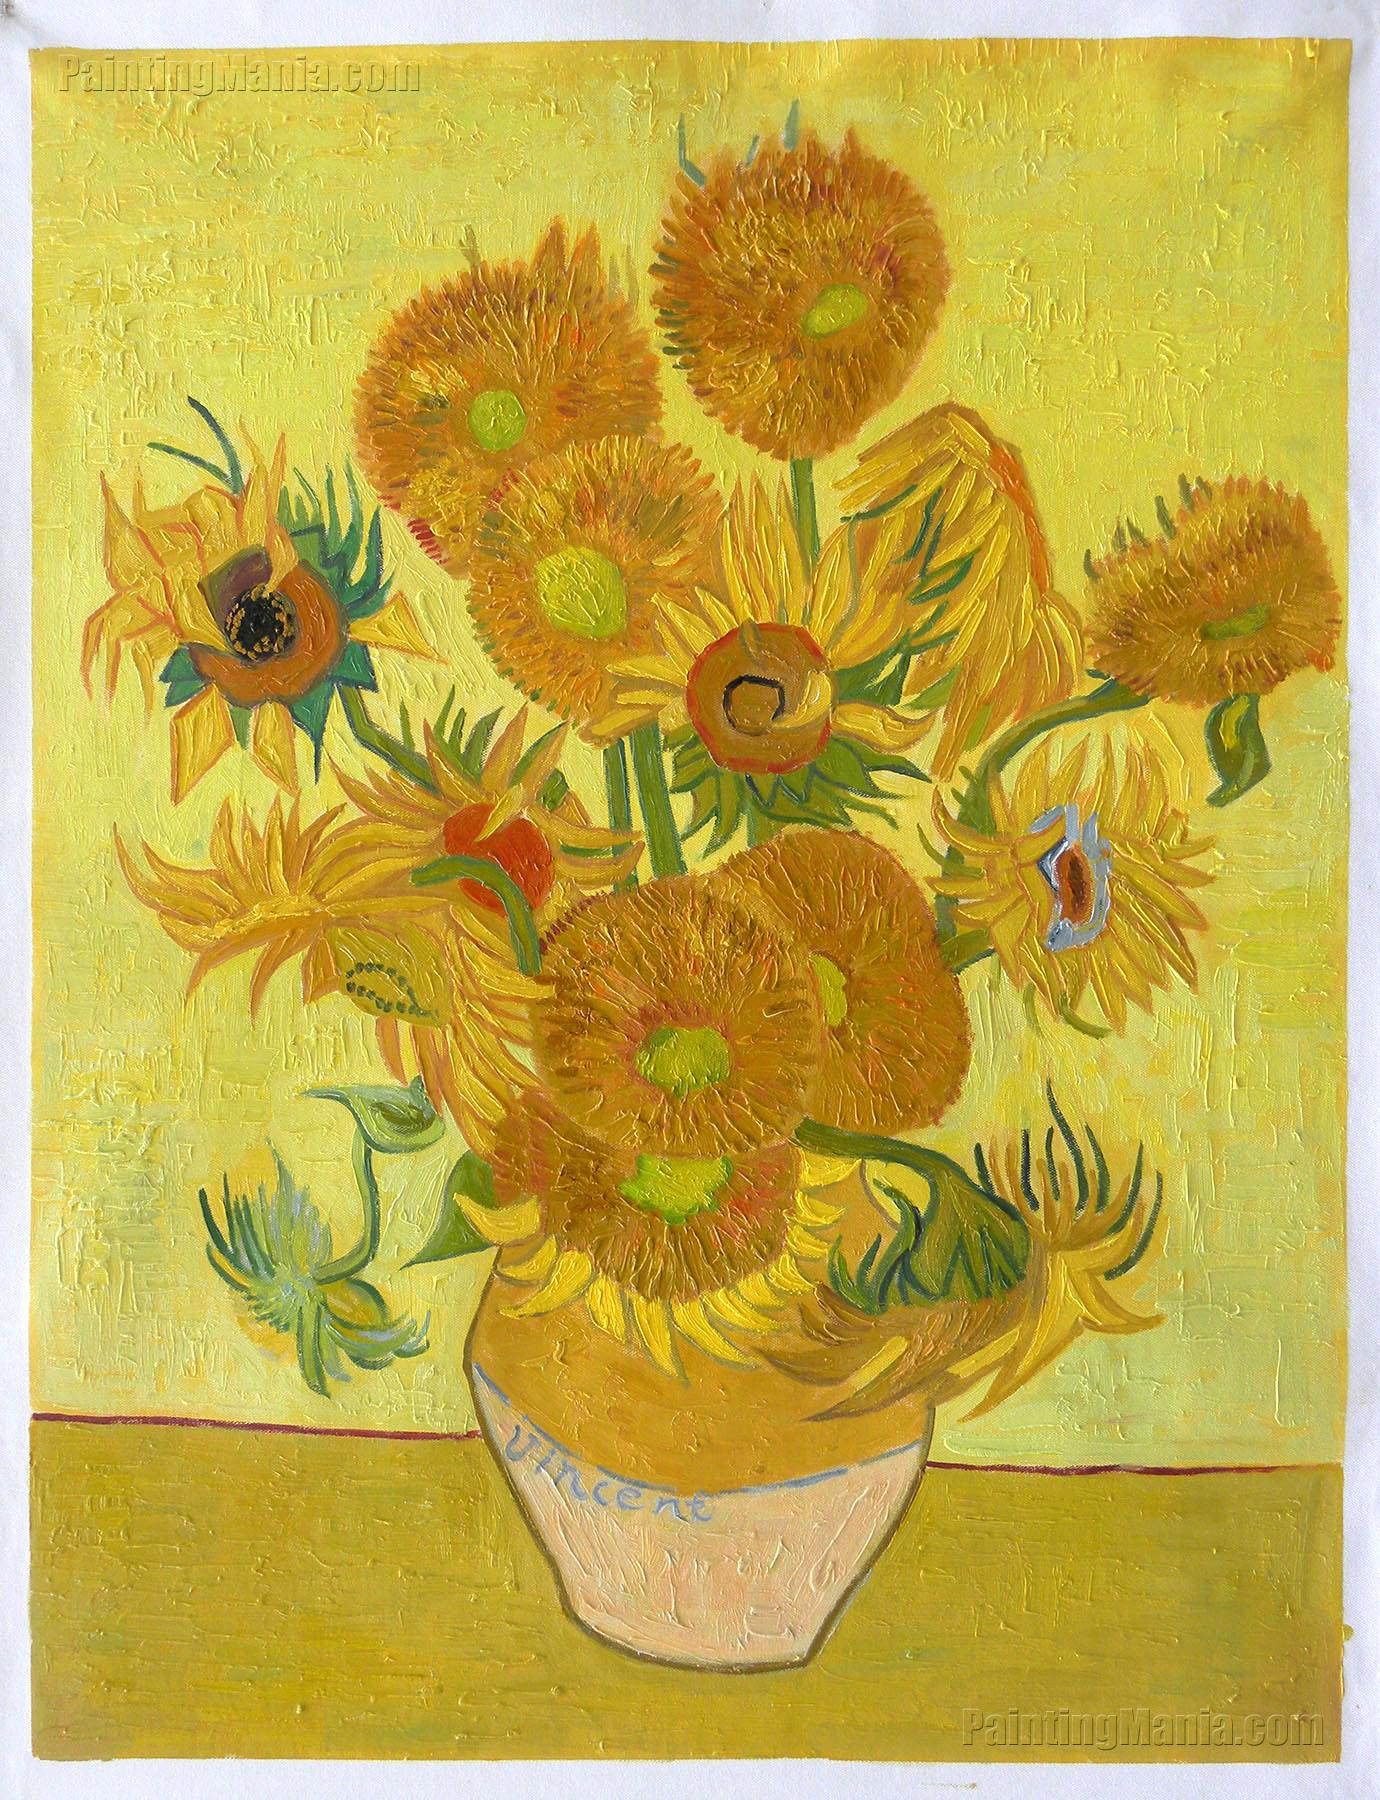 Vincent Van Gogh Paintings Sunflowers Sunflowers 1889 Vincent Van Gogh Paintings